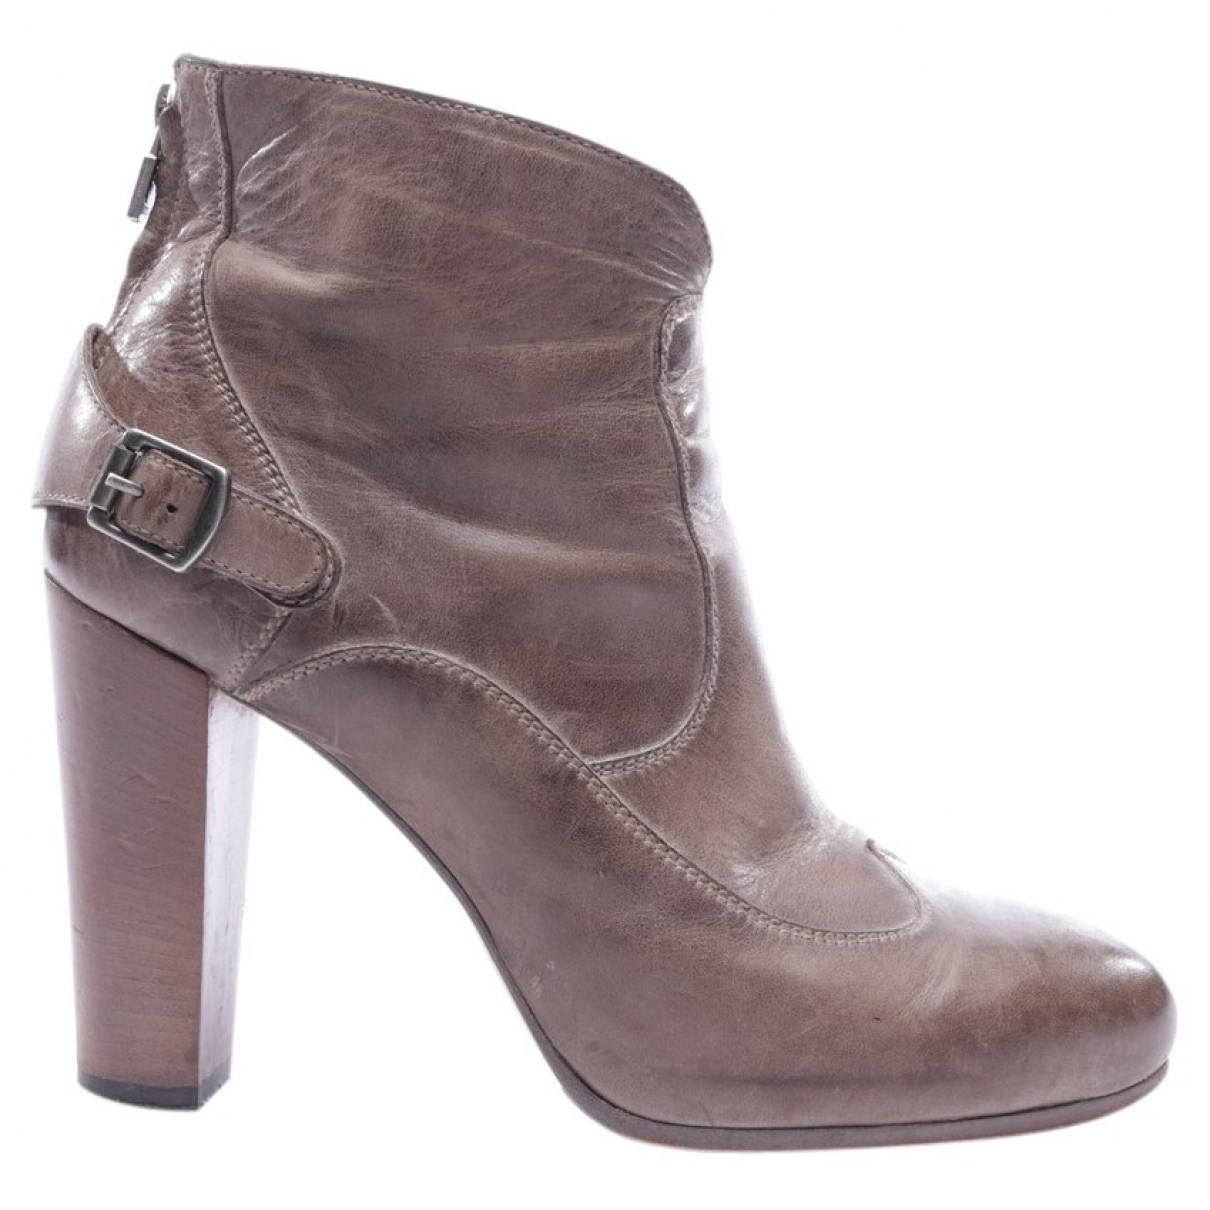 Belstaff \N Grey Leather Ankle boots for Women 41 EU